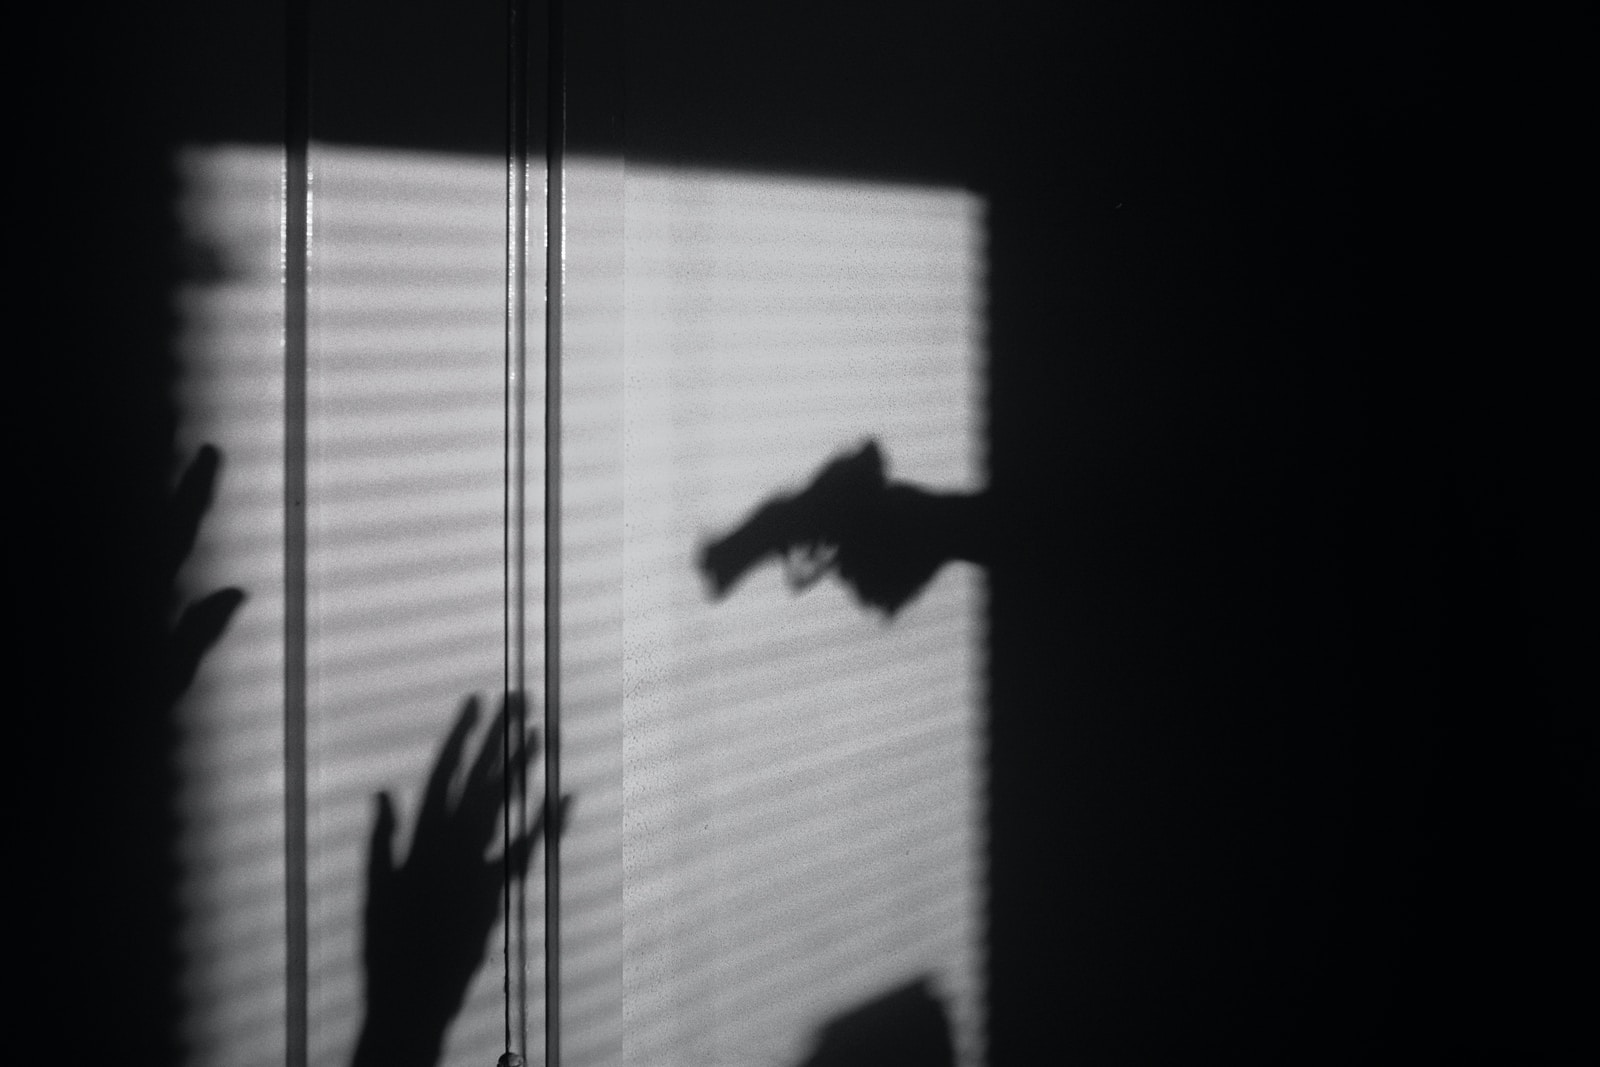 silhouette of person on window